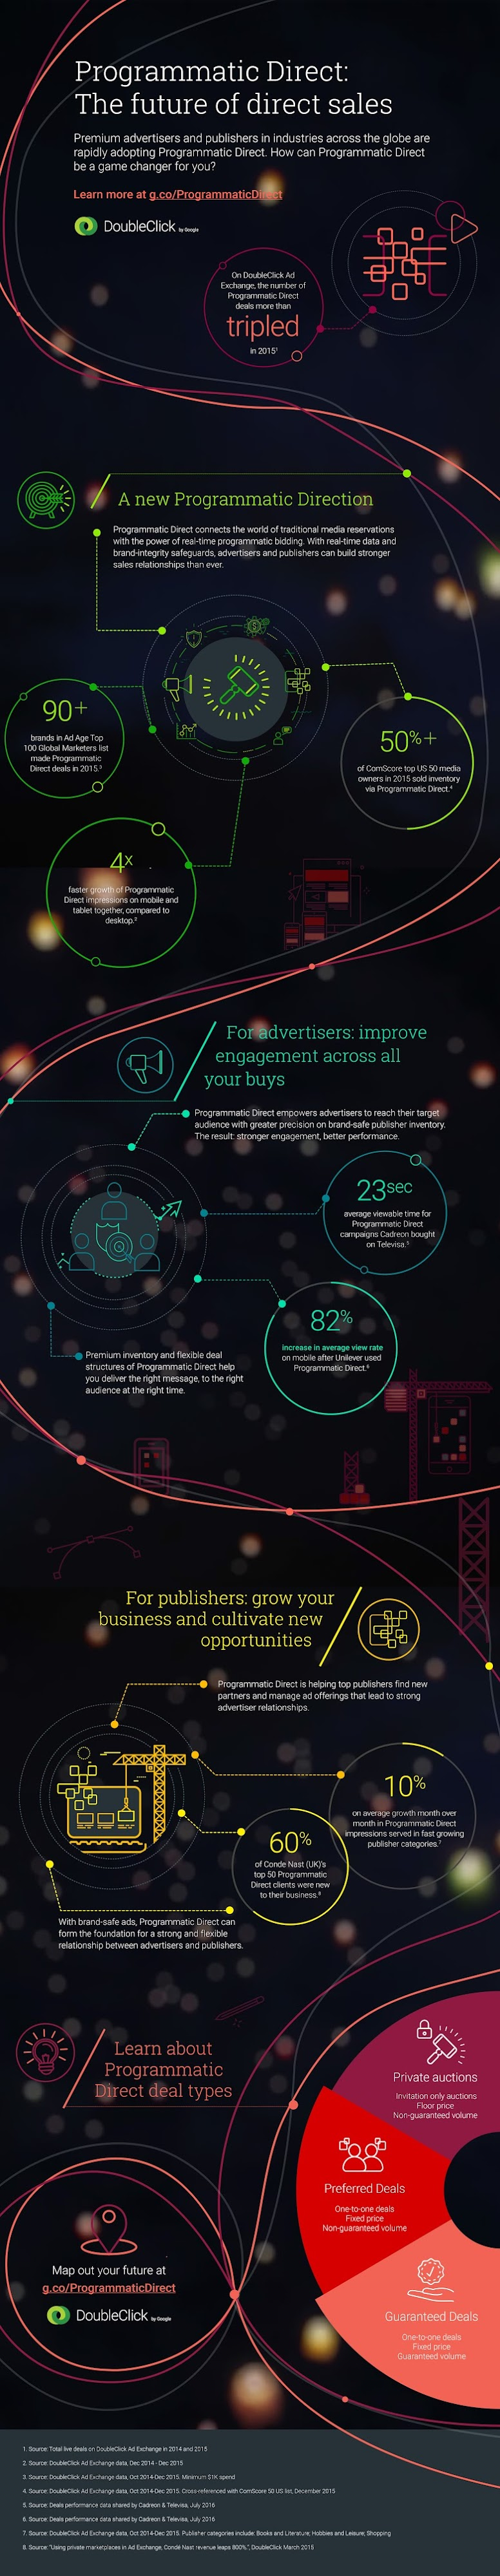 Programmatic Direct infographic